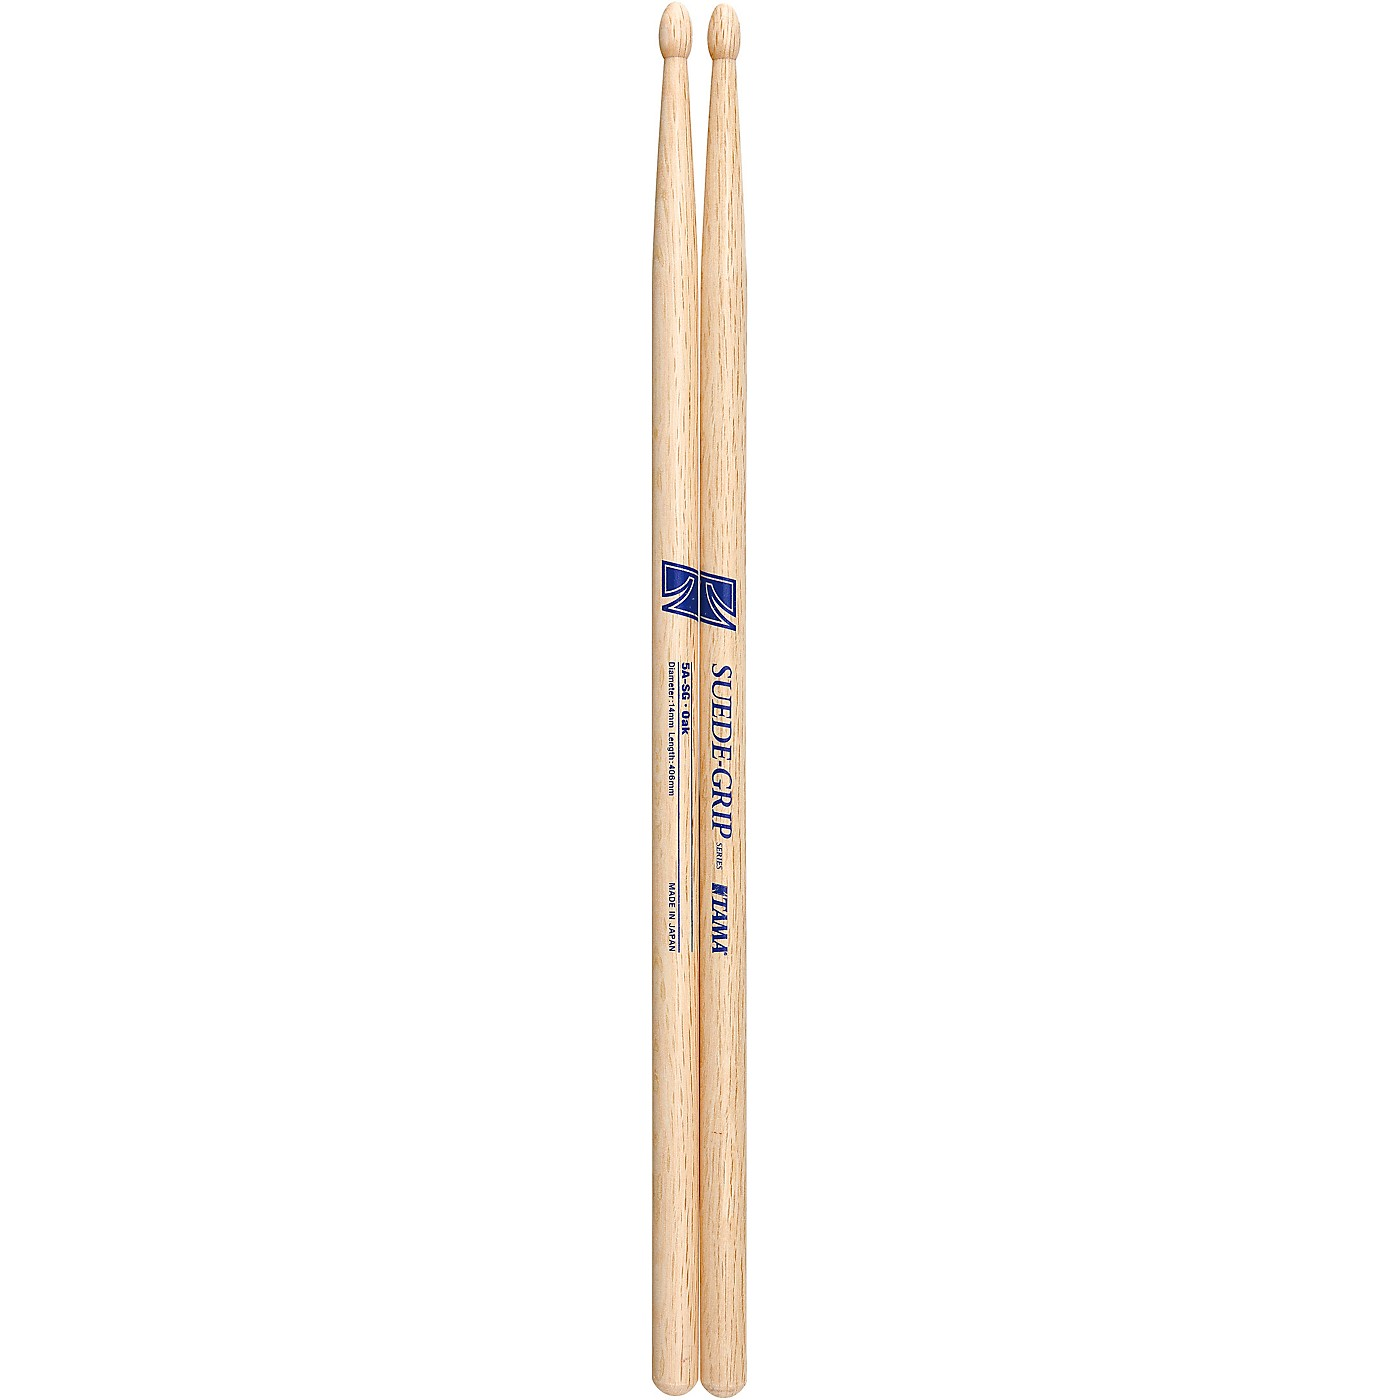 TAMA Traditional Series Oak Drumstick with Suede-Grip thumbnail